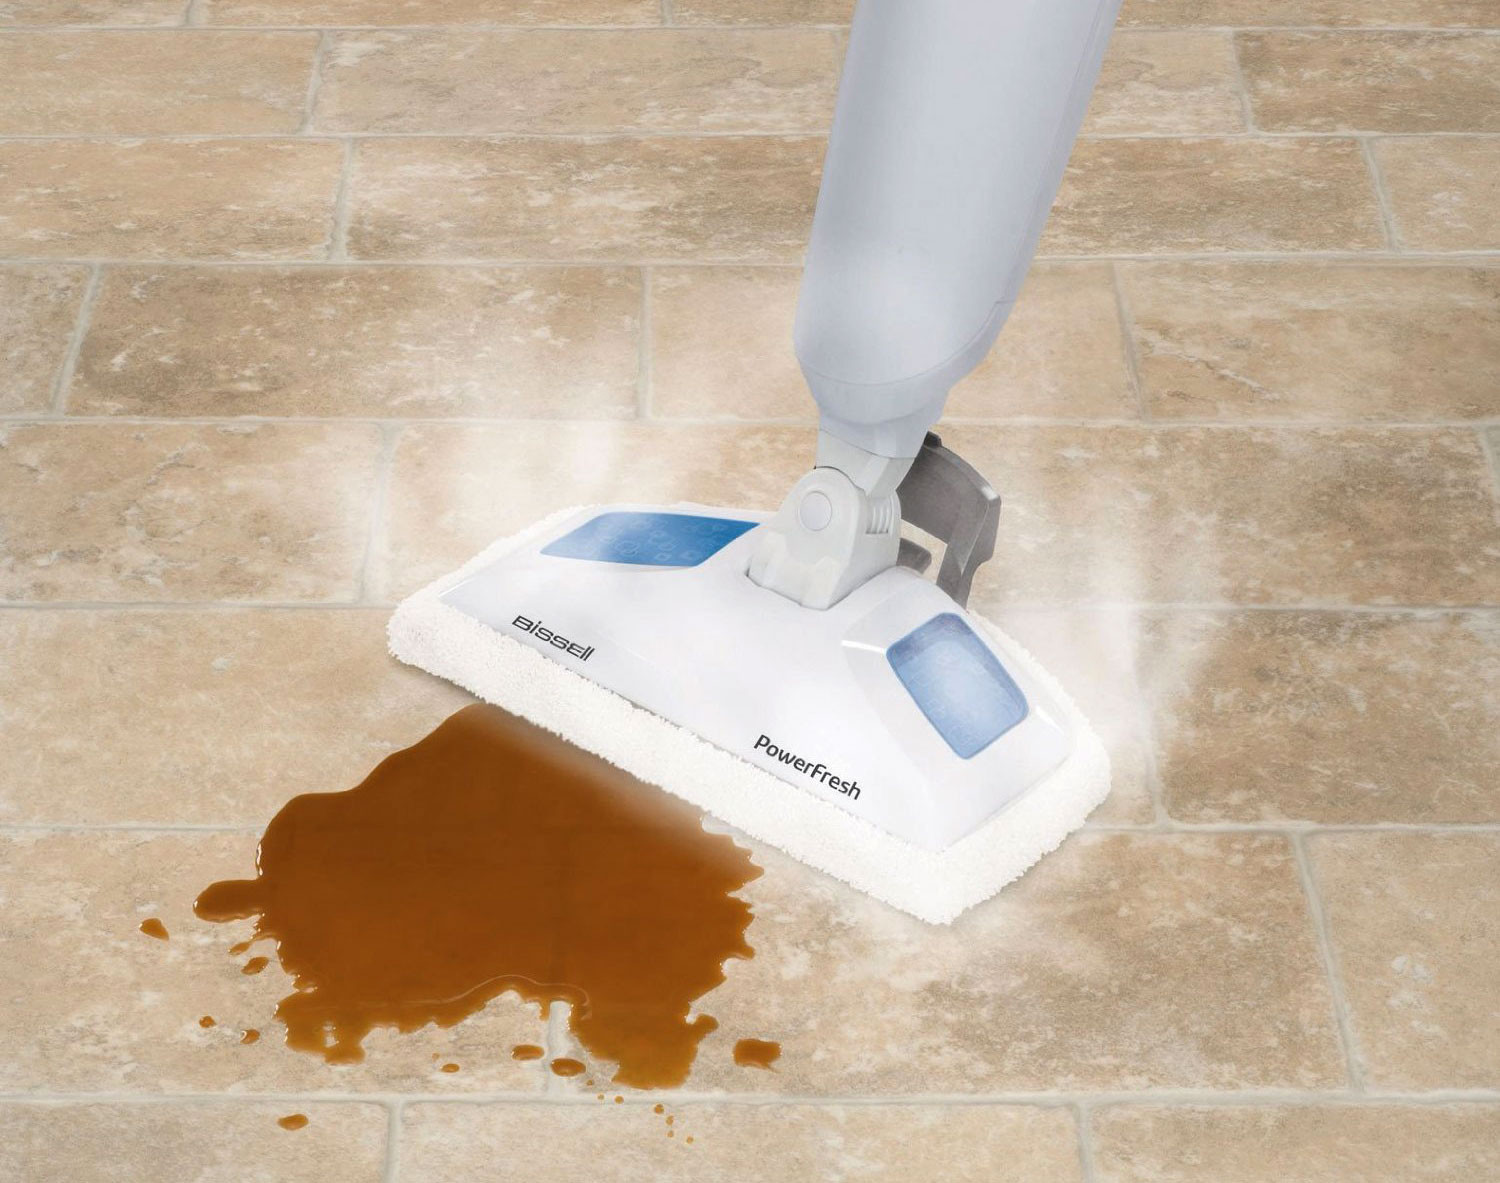 Hardwood Floor Buffer Cleaner Of the 4 Best Steam Mops Intended for A3e8dac8 Fd9f 4940 Ad99 8094ad1403c3 811cn2sa0wl Sl1500